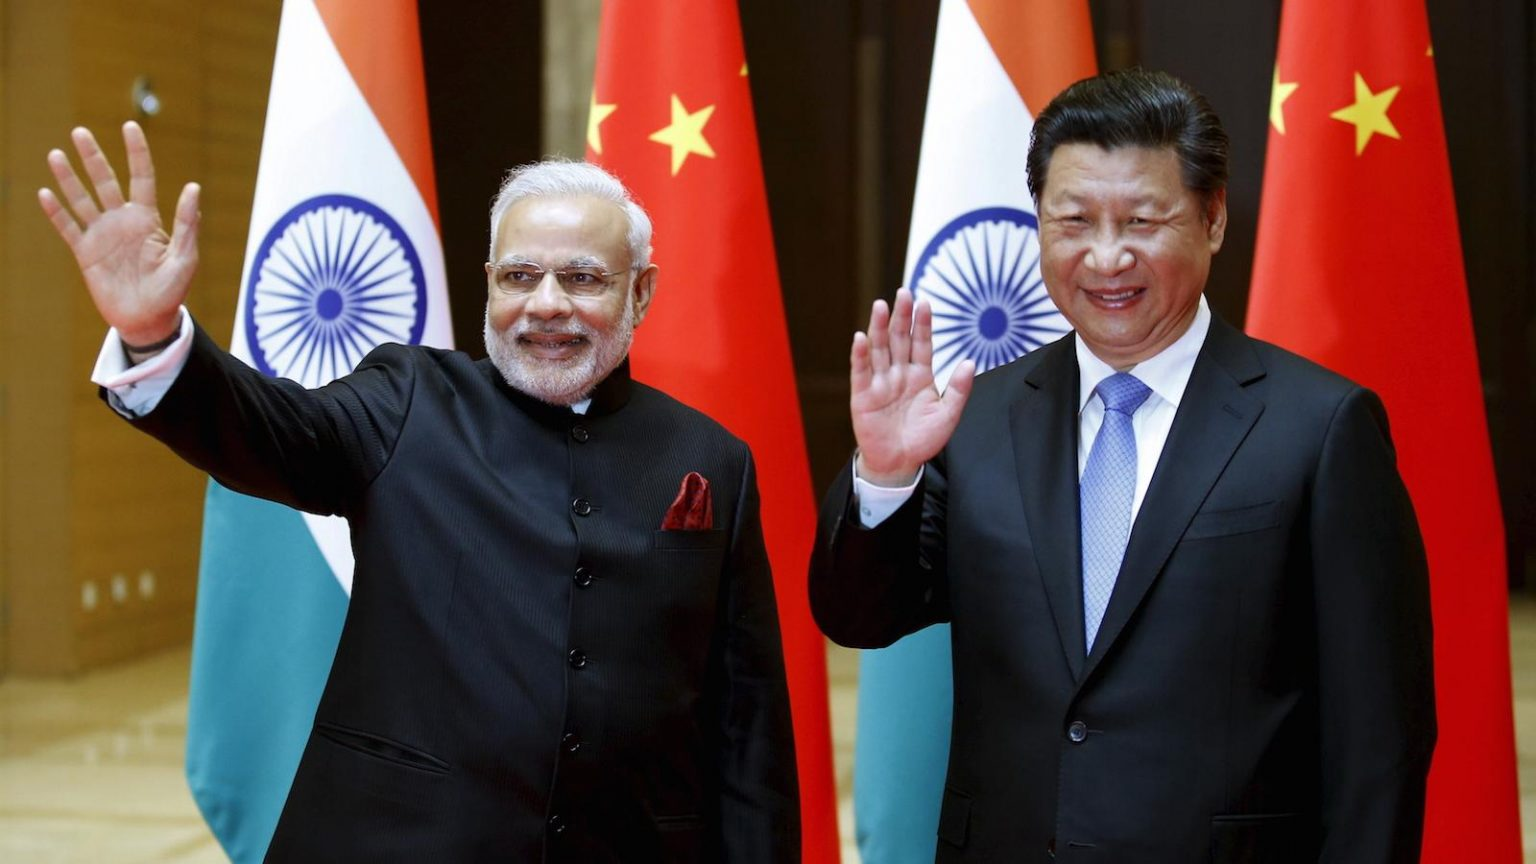 A New Book Comparing Socialist China to Democratic India